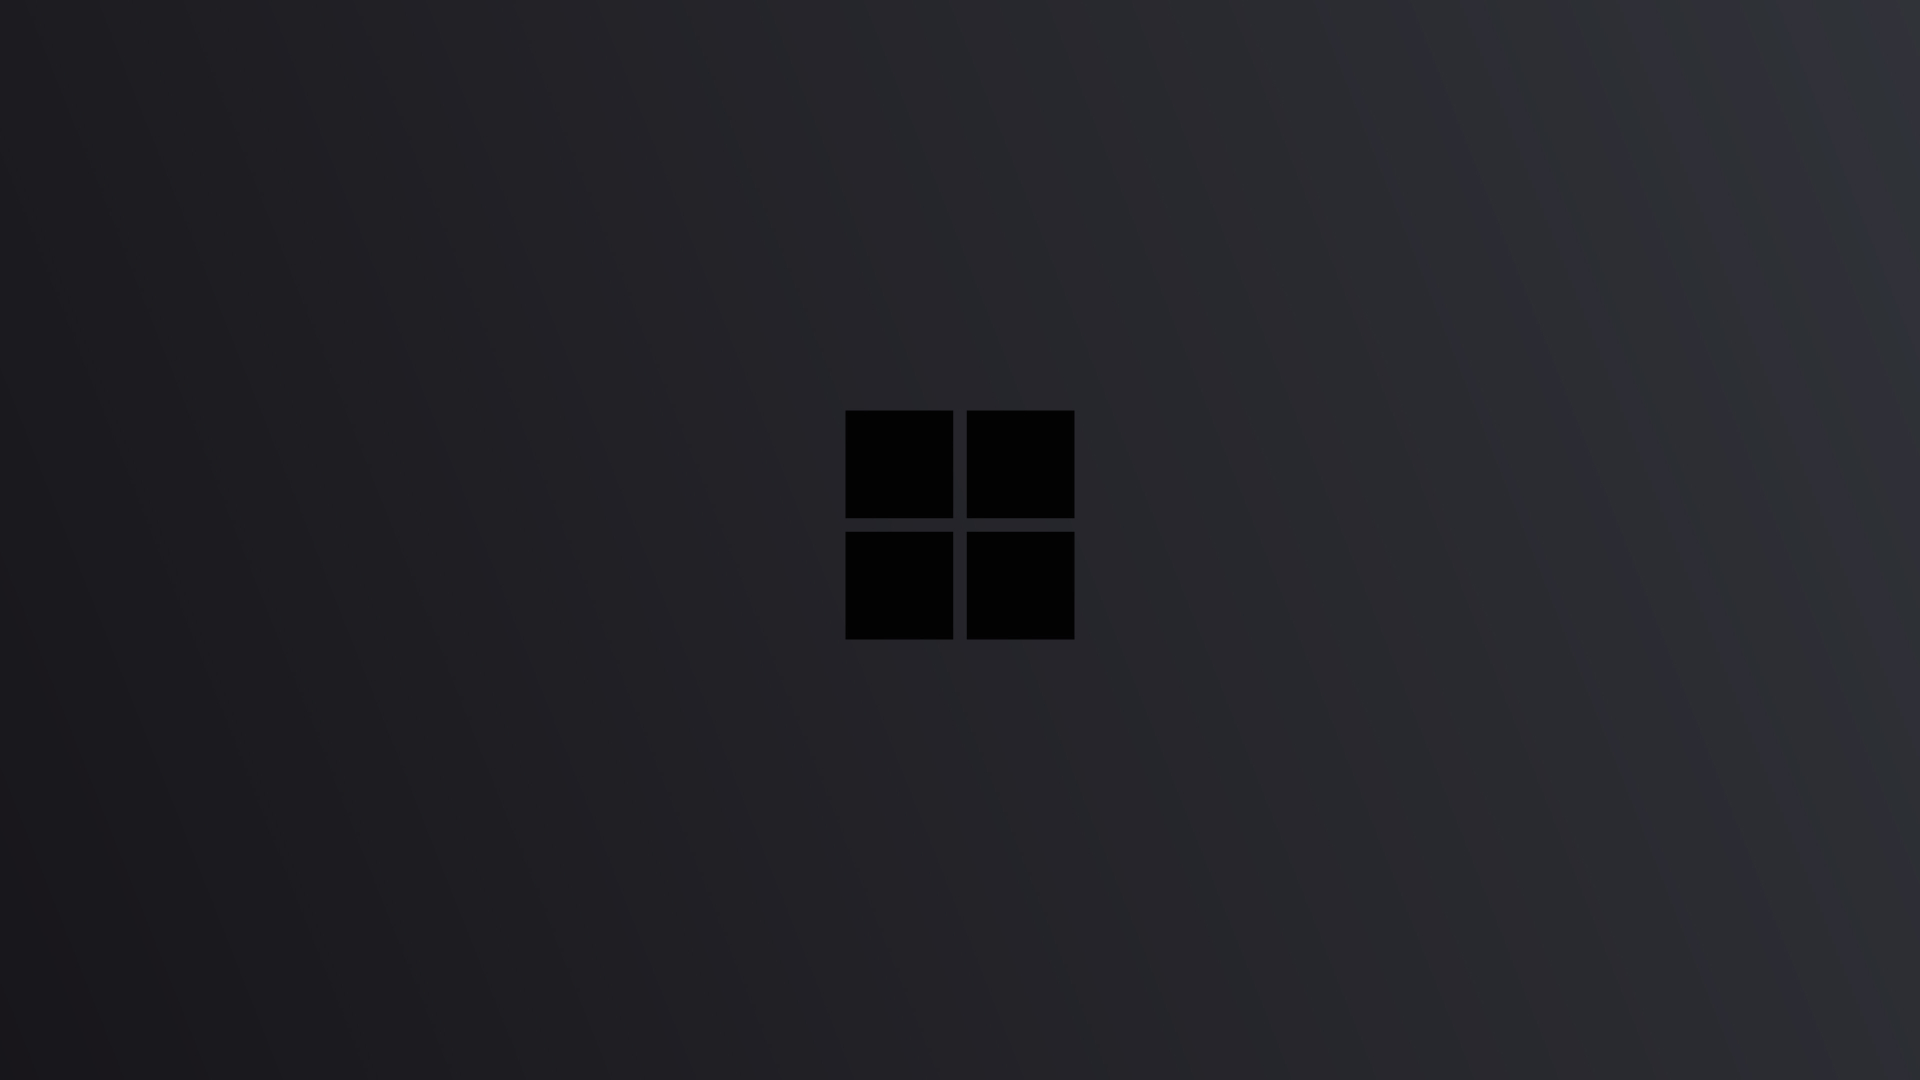 1920x1080 Windows 10 Logo Minimal Dark